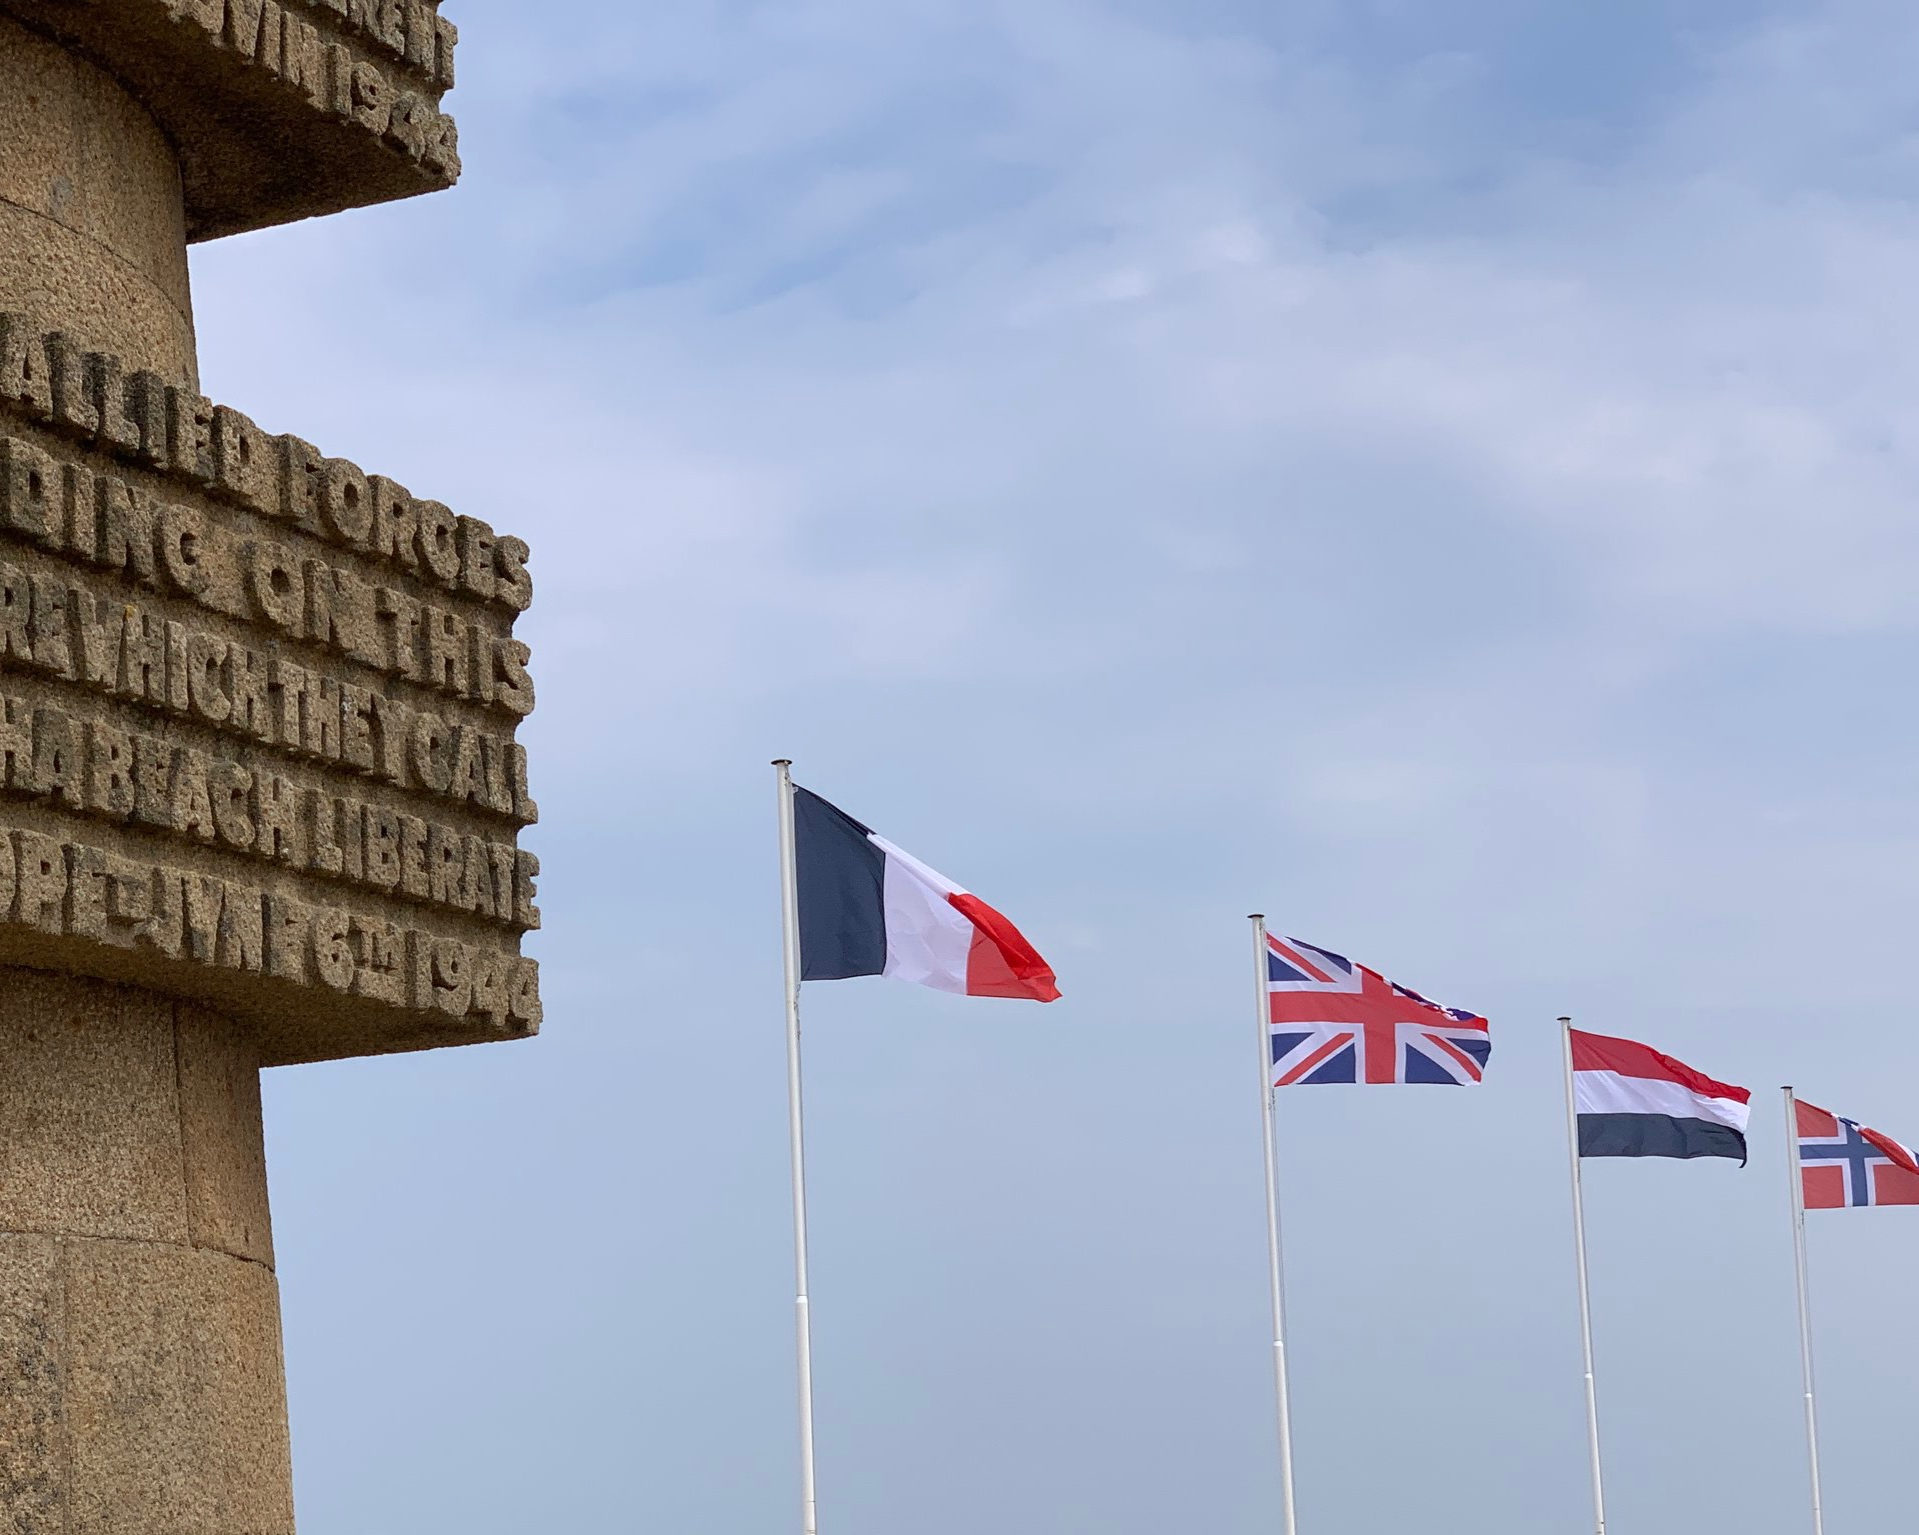 Some of the flags at the site.